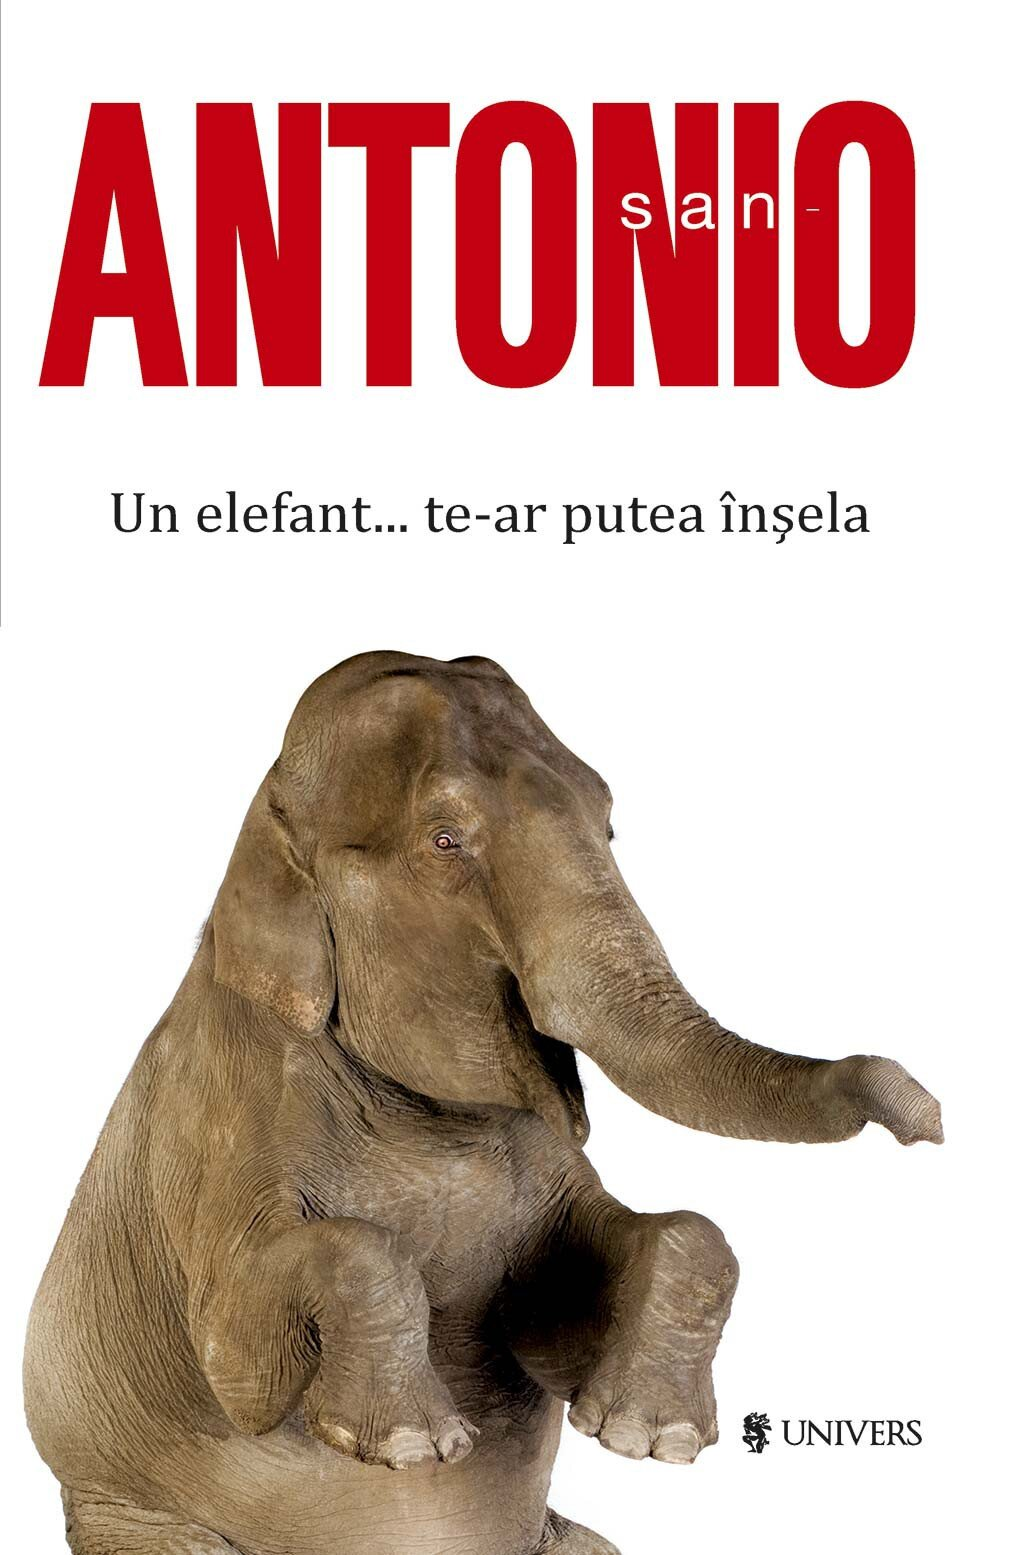 San-Antonio. Un elefant... te-ar putea insela PDF (Download eBook)